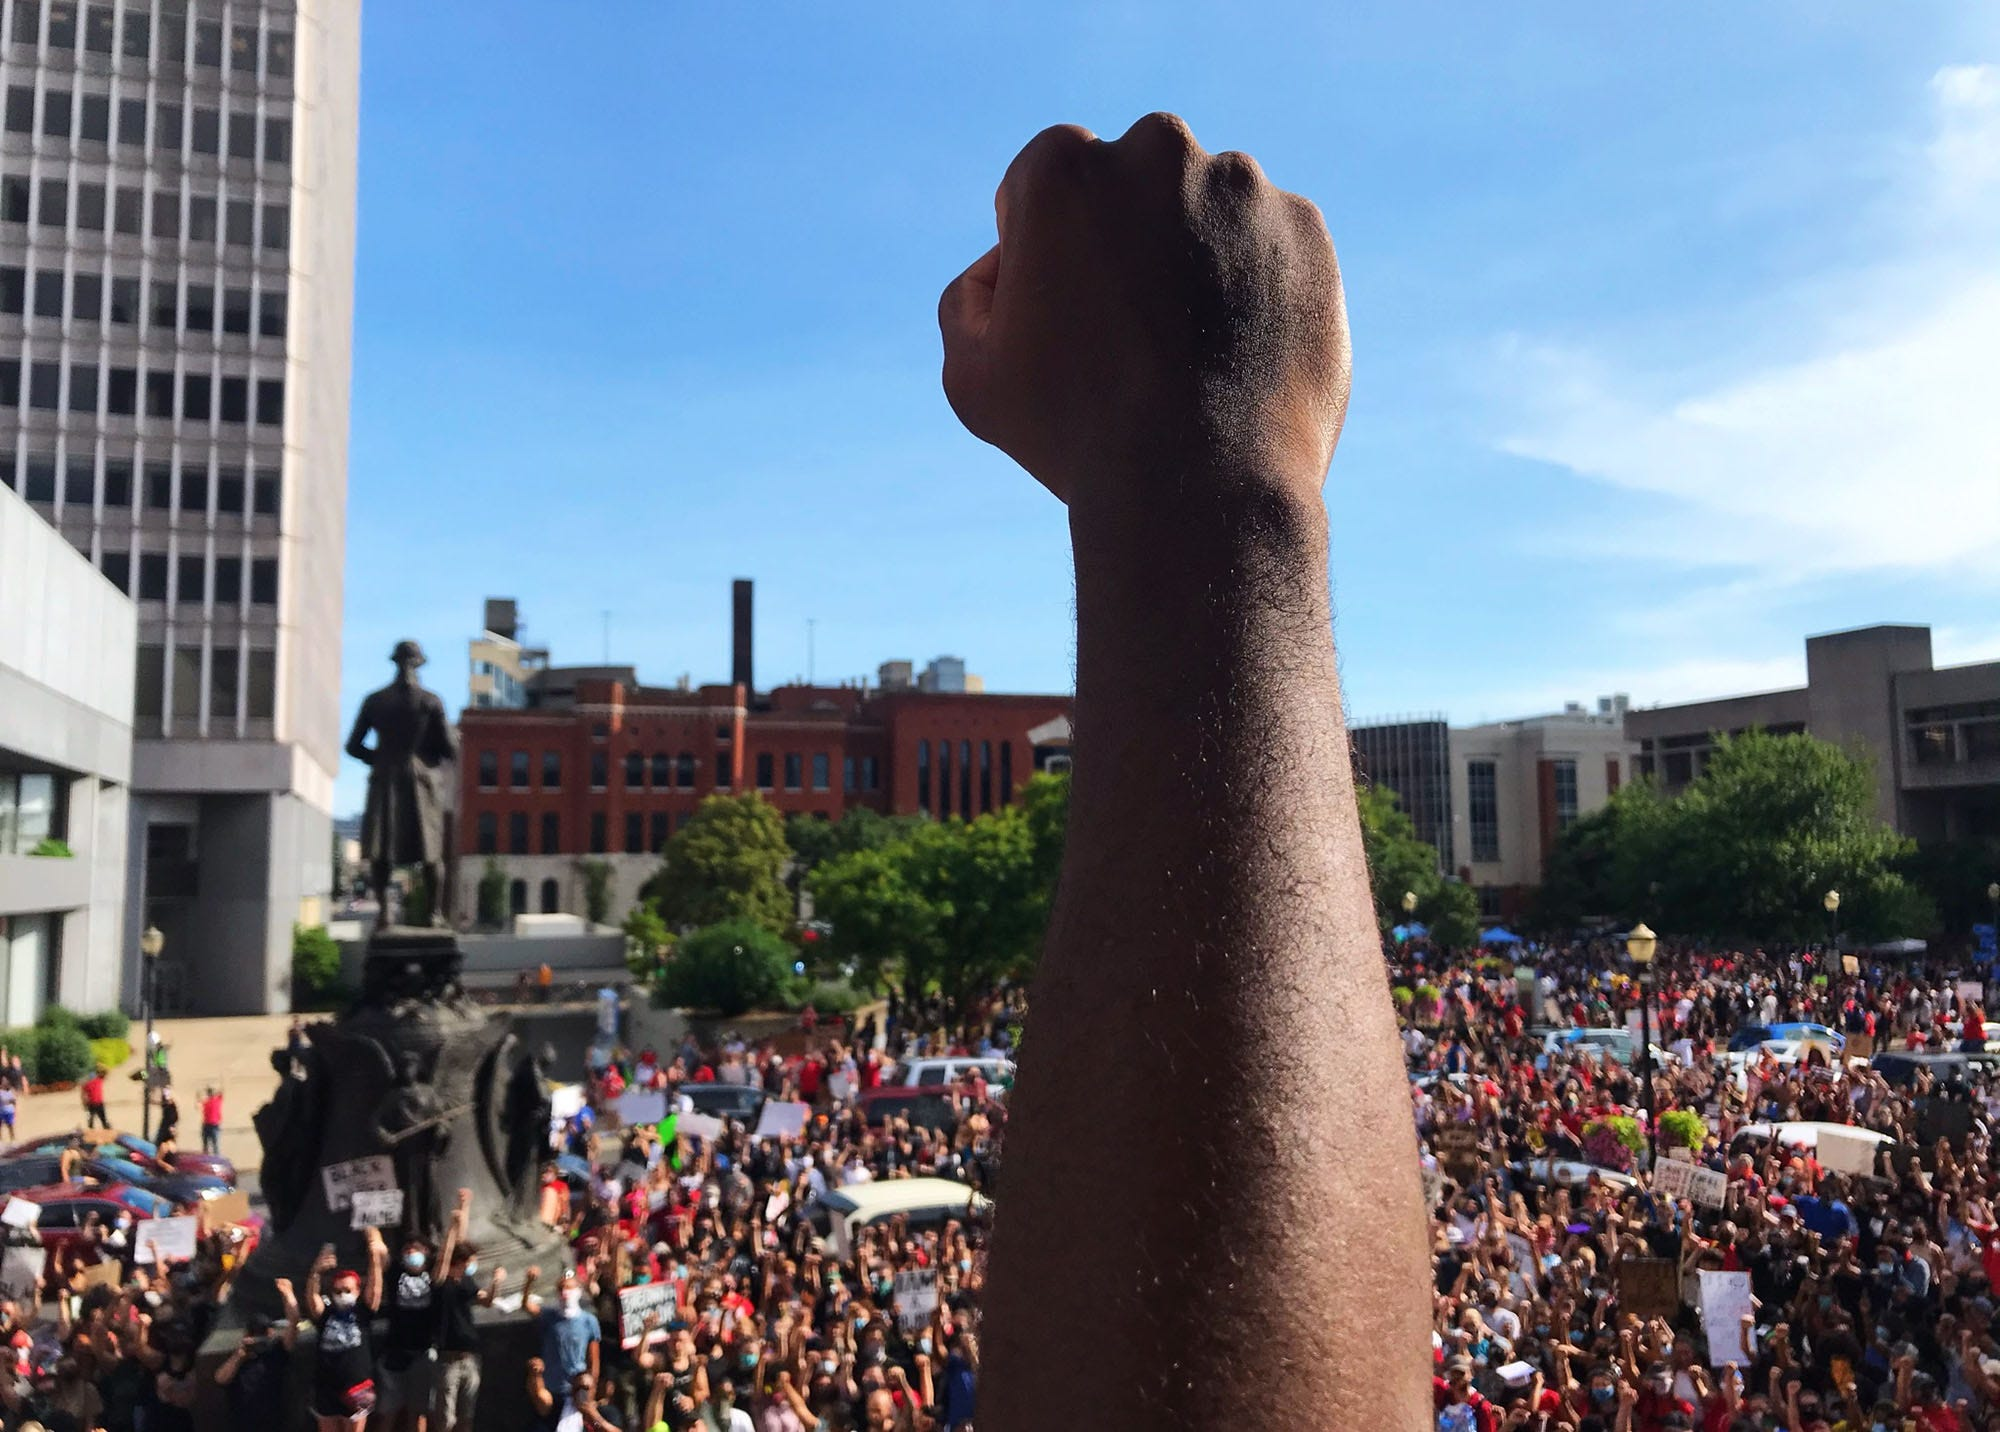 An attendee of the rally in downtown Louisville in Jefferson Square did a fist pump to the crowd below. June 5, 2020.